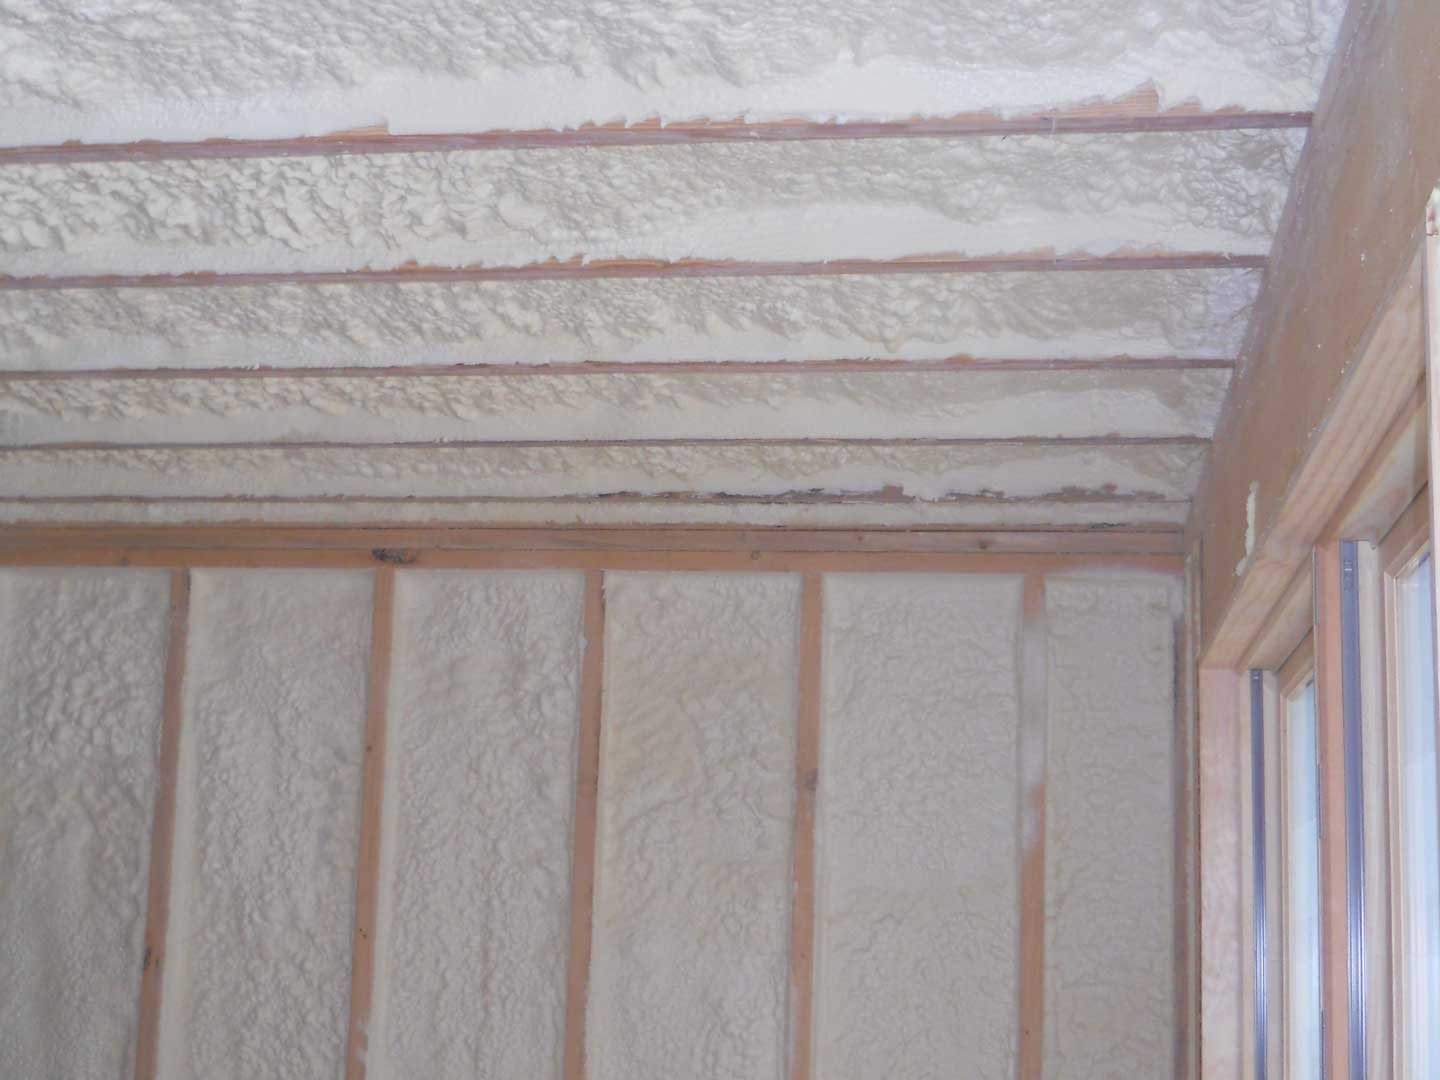 Attic ceiling and exterior wall closed cell spray foam. Air-tight! Closed cell spray foam. Chester, MA. Foam USA